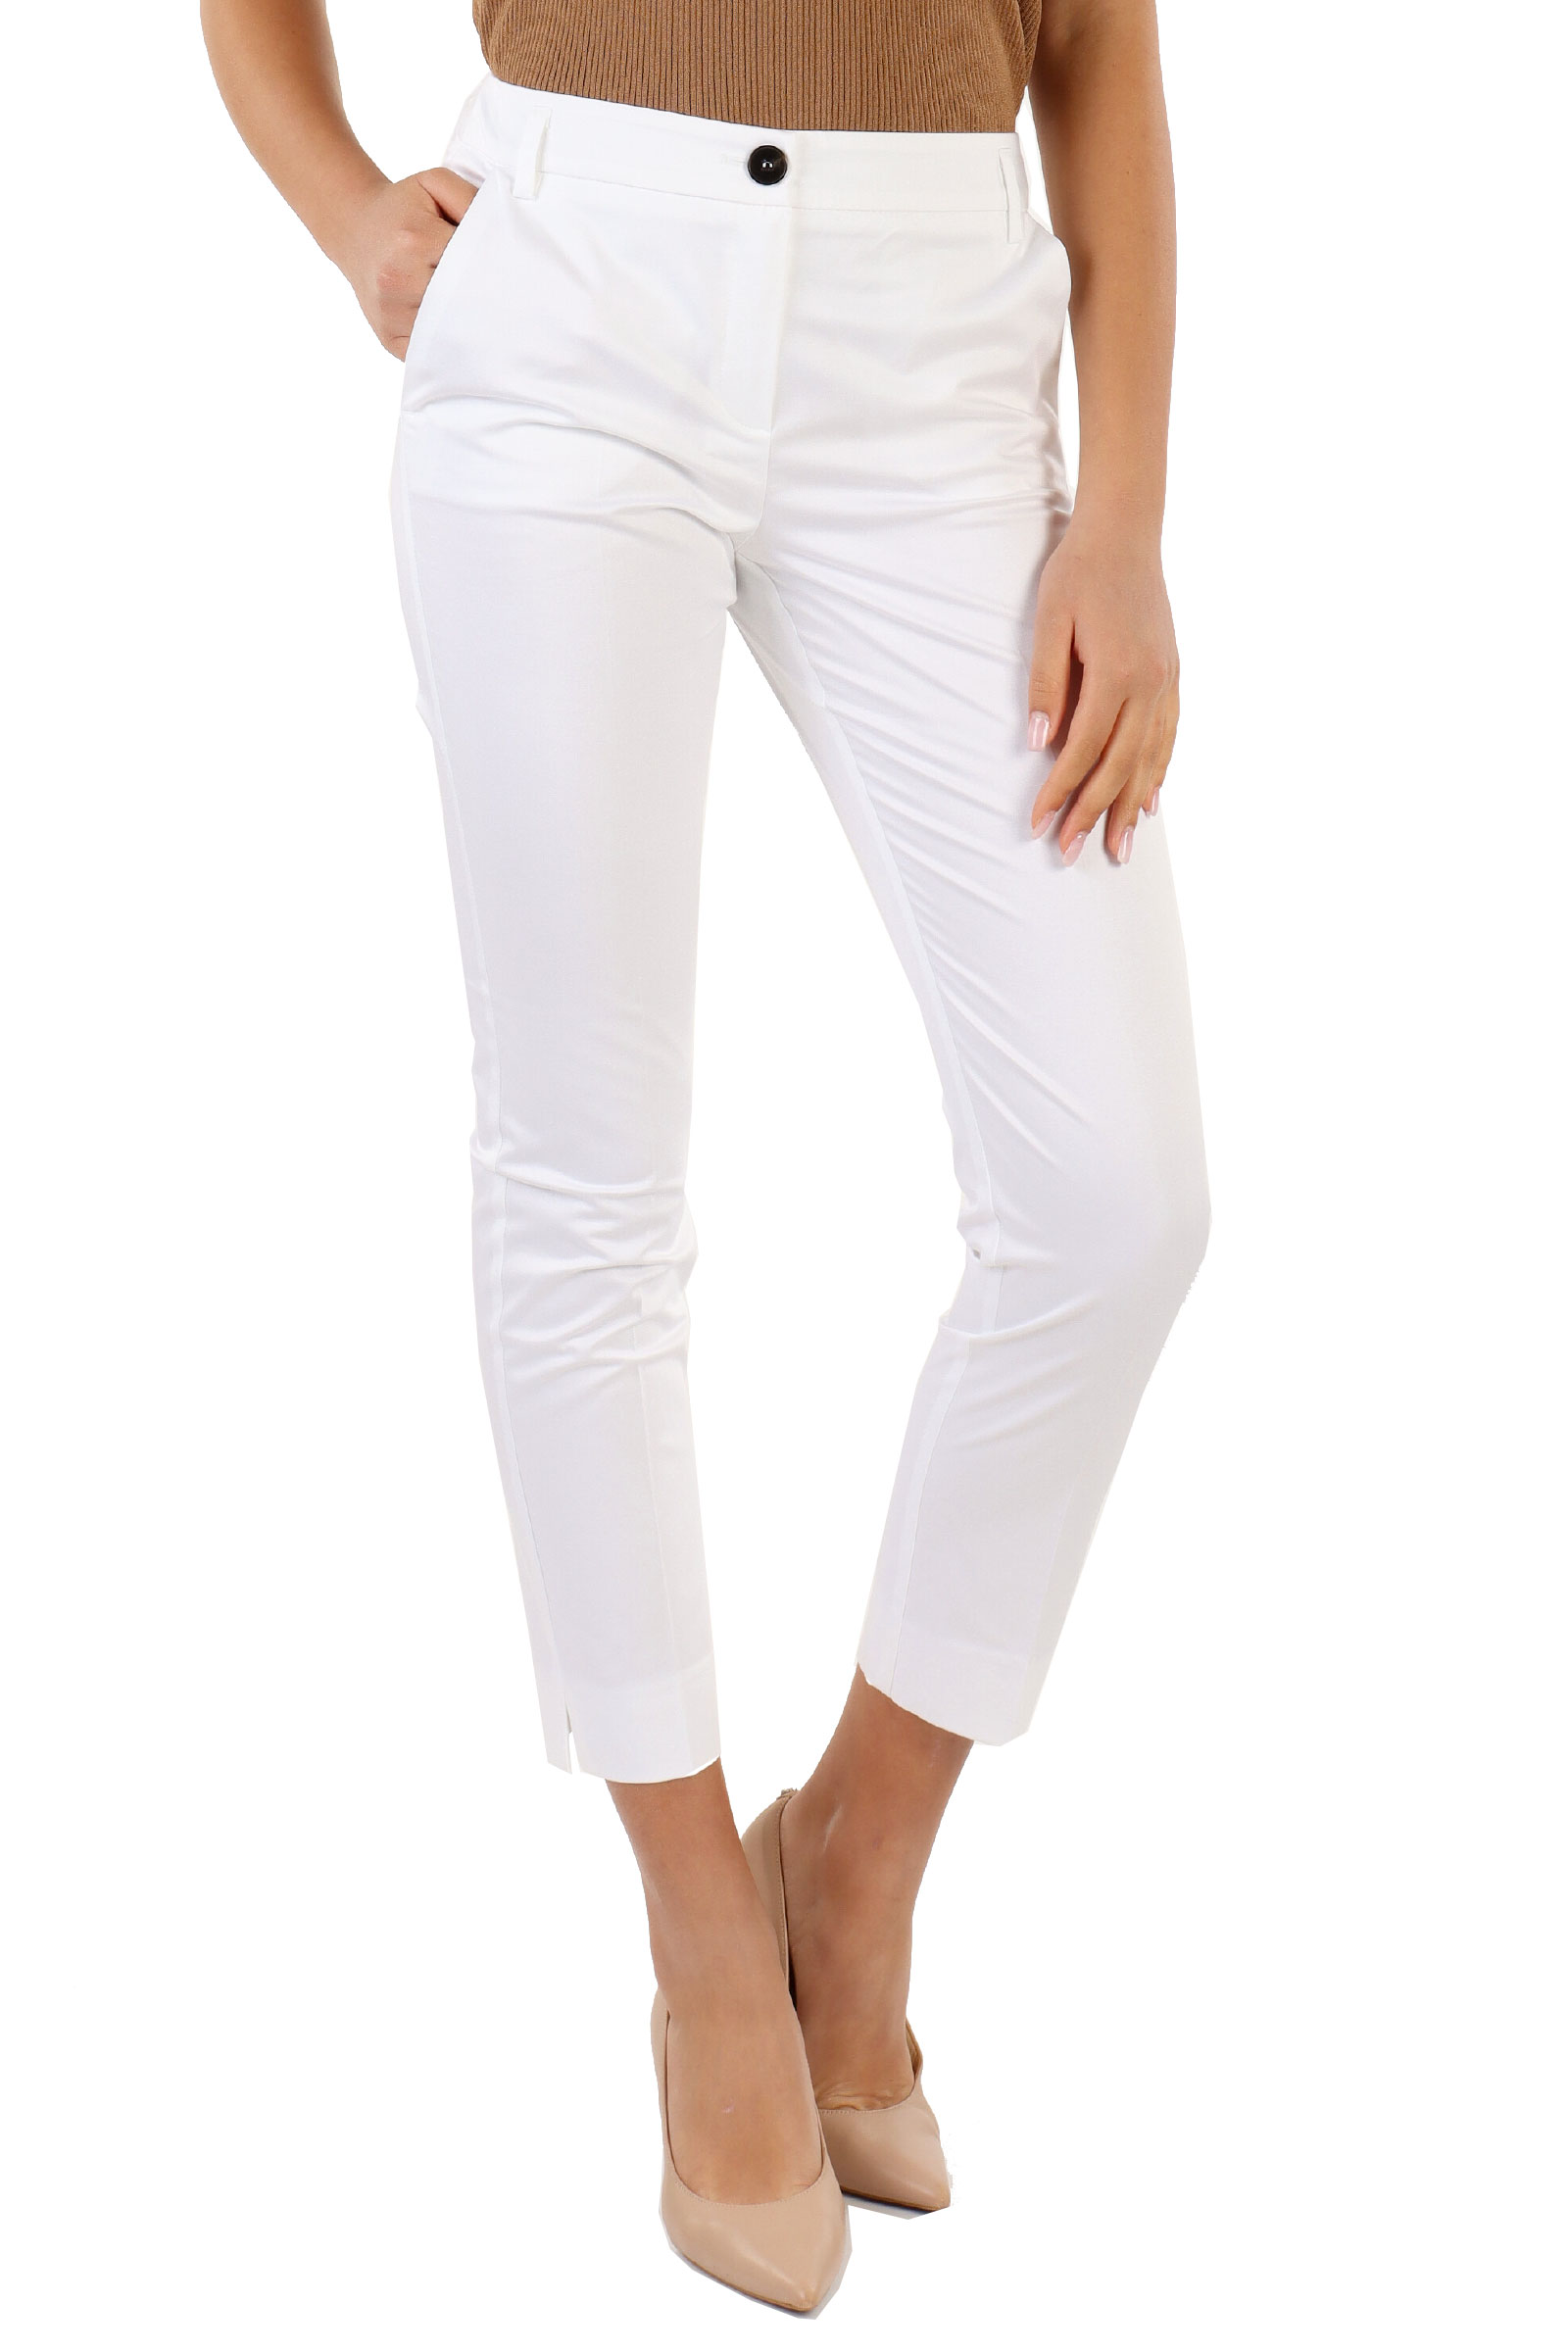 EMME MARELLA | Trousers | 51310414000001